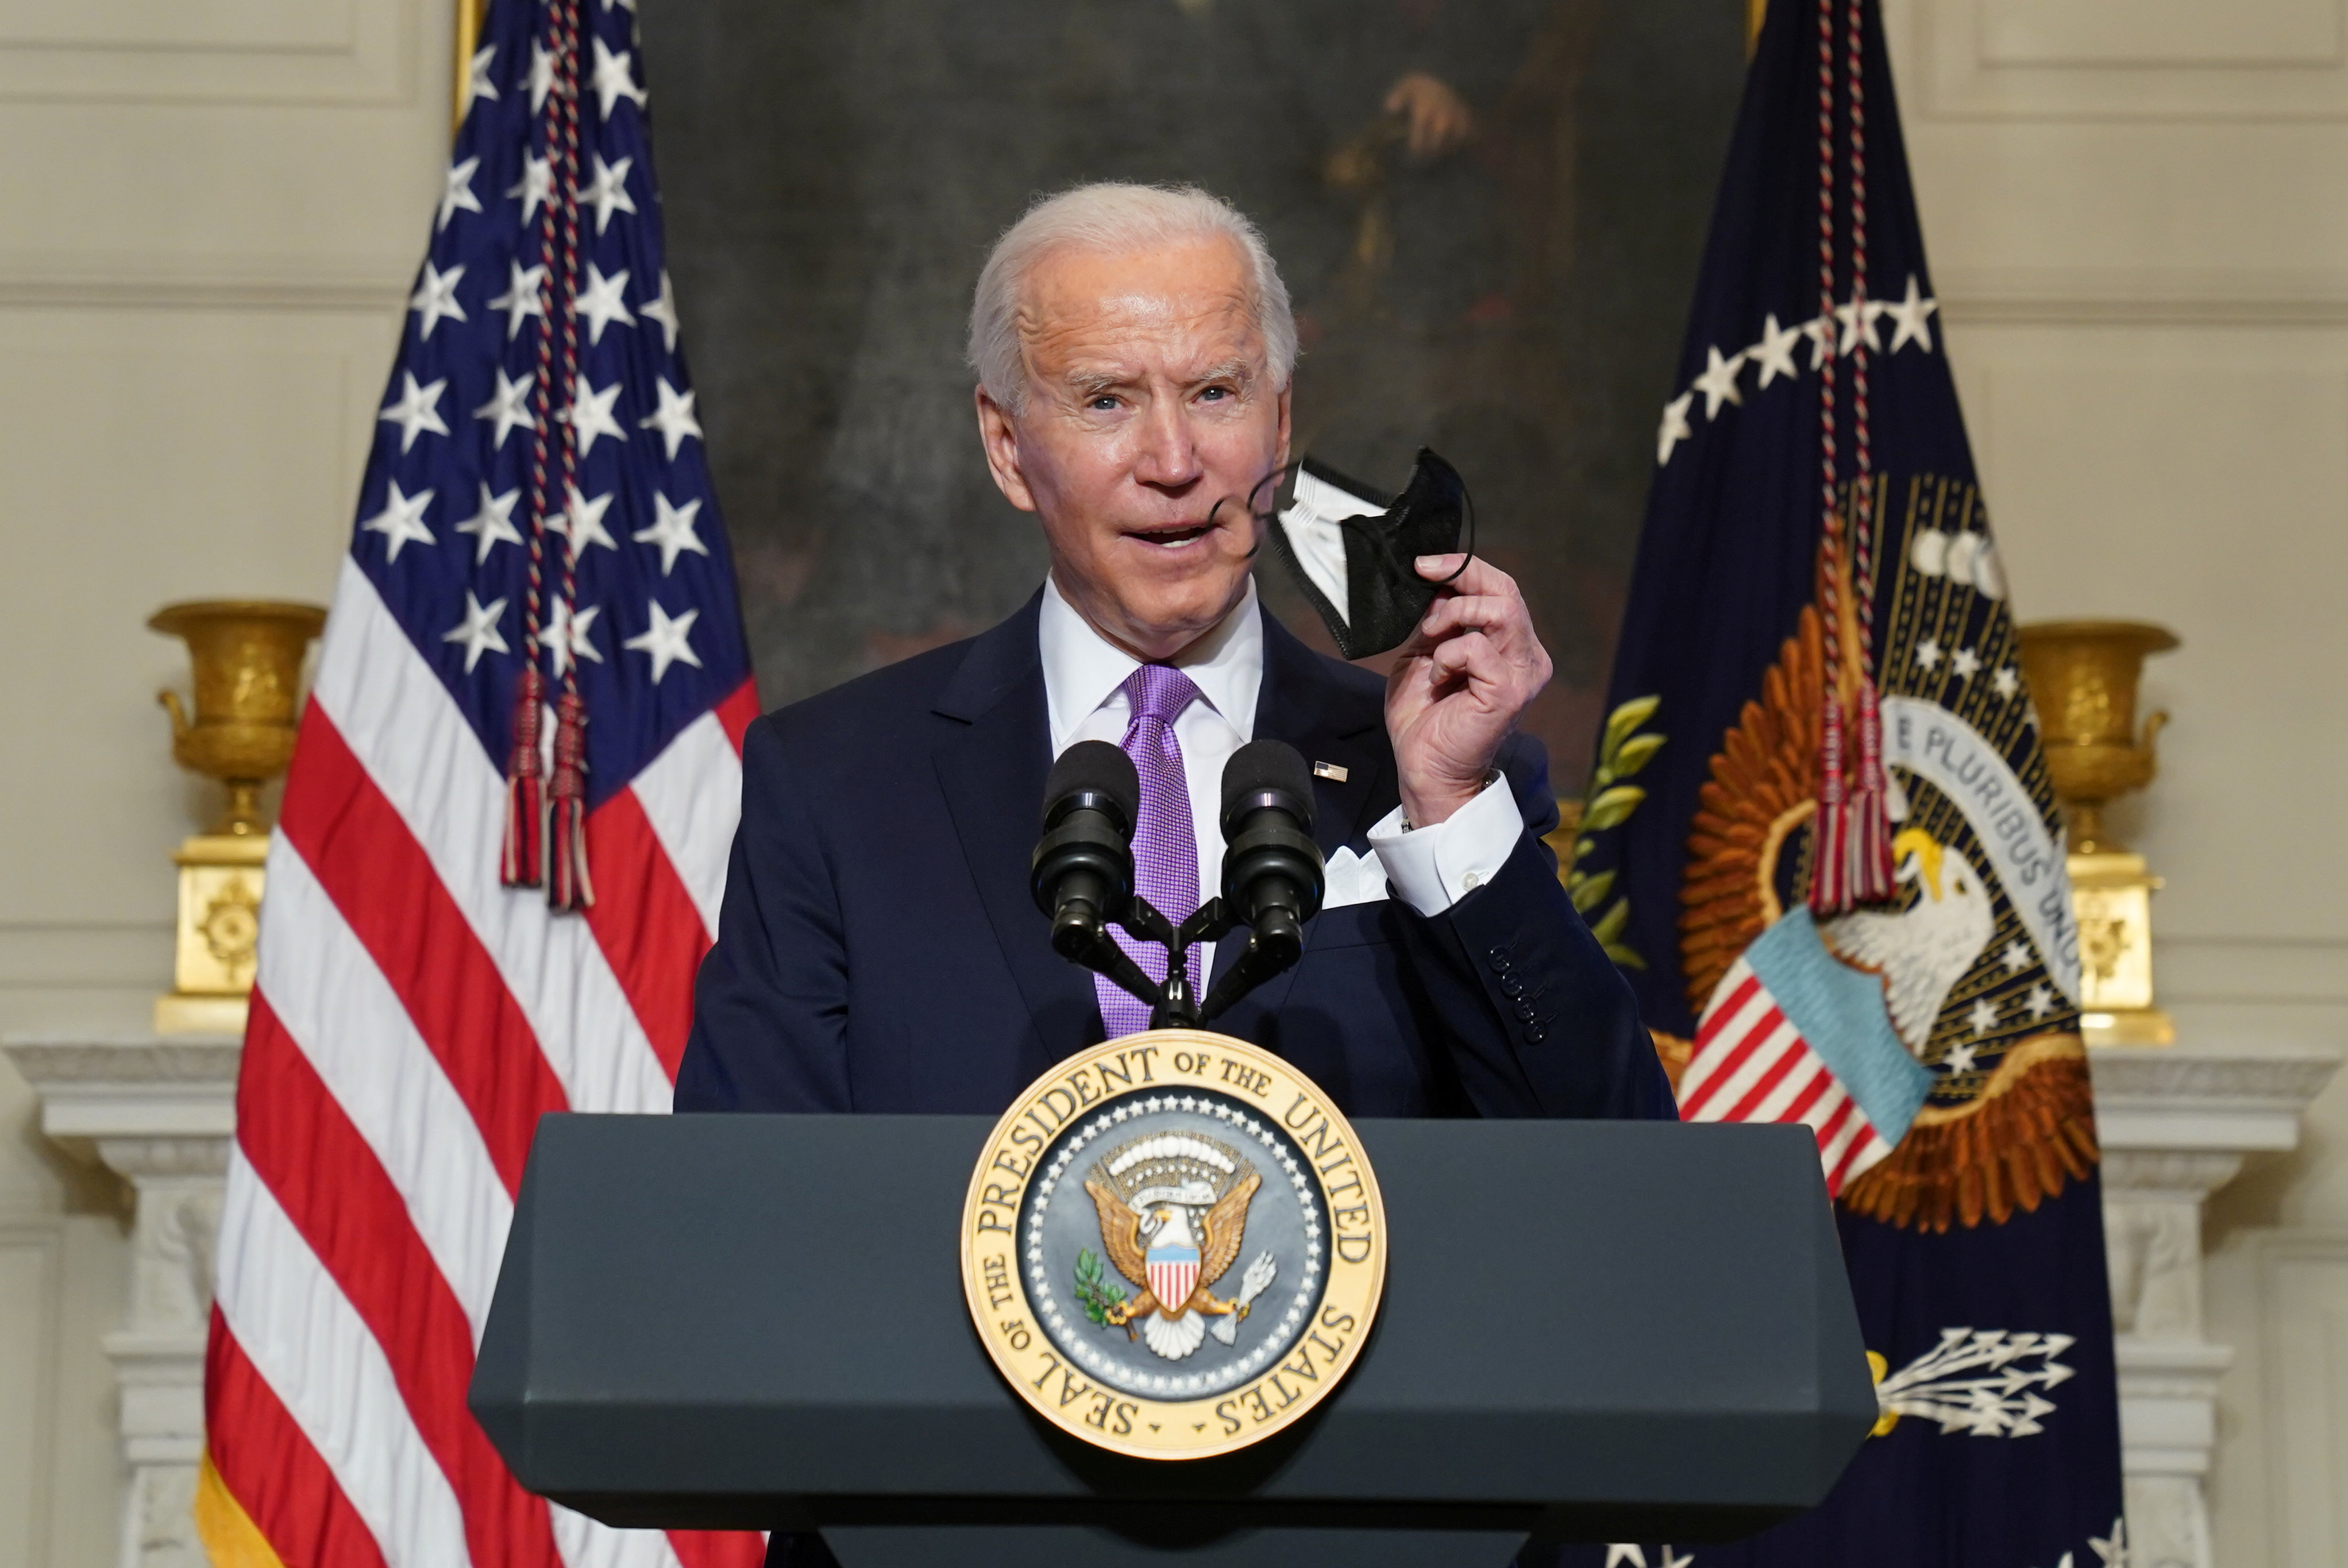 U.S. President Joe Biden holds up a face mask as he speaks about the fight to contain the coronavirus disease (COVID-19) pandemic, at the White House in Washington, U.S. January 26, 2021. REUTERS/Kevin Lamarque